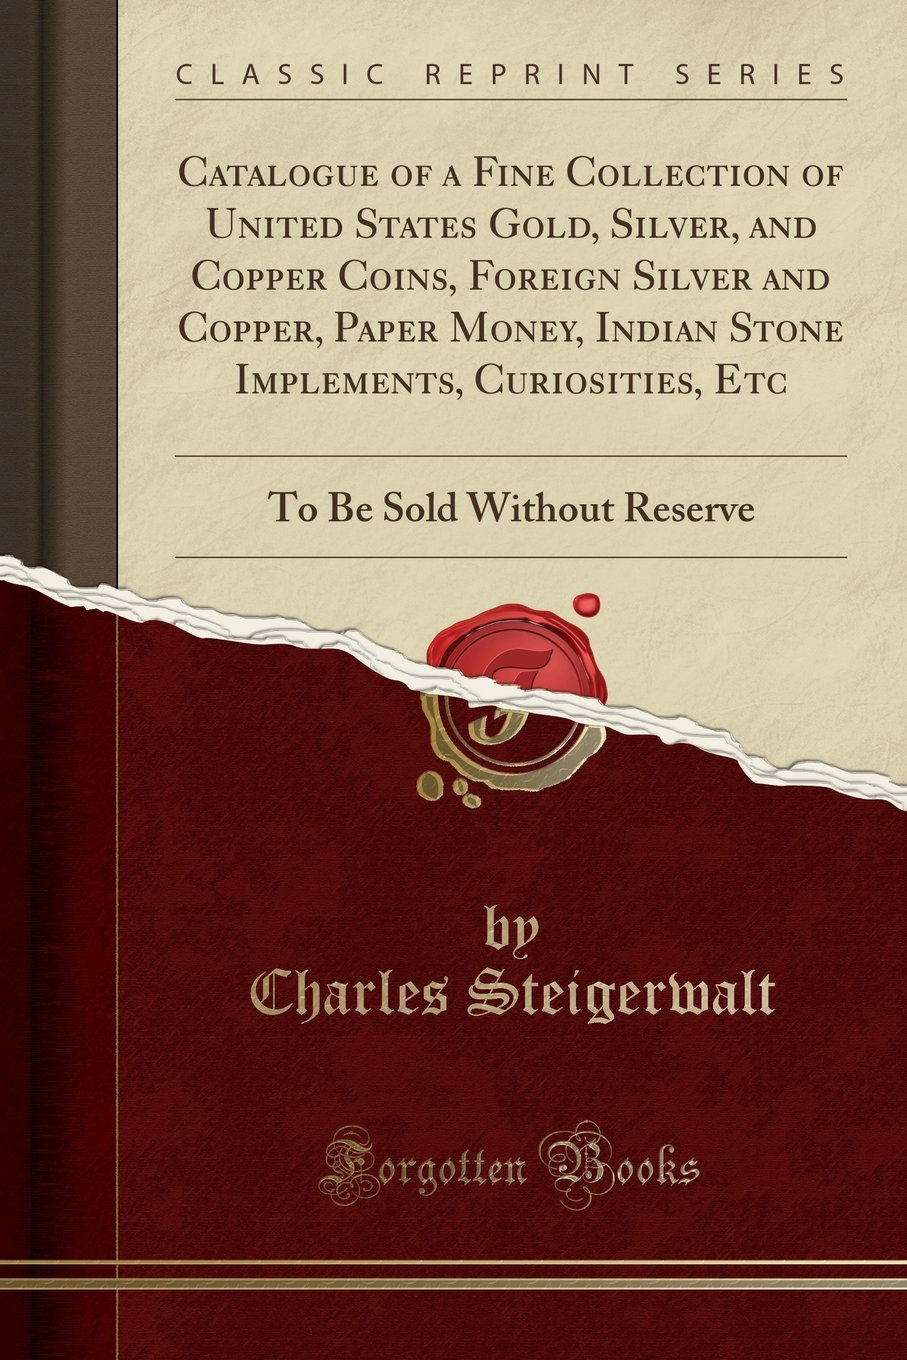 Catalogue of a Fine Collection of United States Gold, Silver, and Copper Coins, Foreign Silver and Copper, Paper Money, Indian Stone Implements, ... To Be Sold Without Reserve (Classic Reprint) PDF